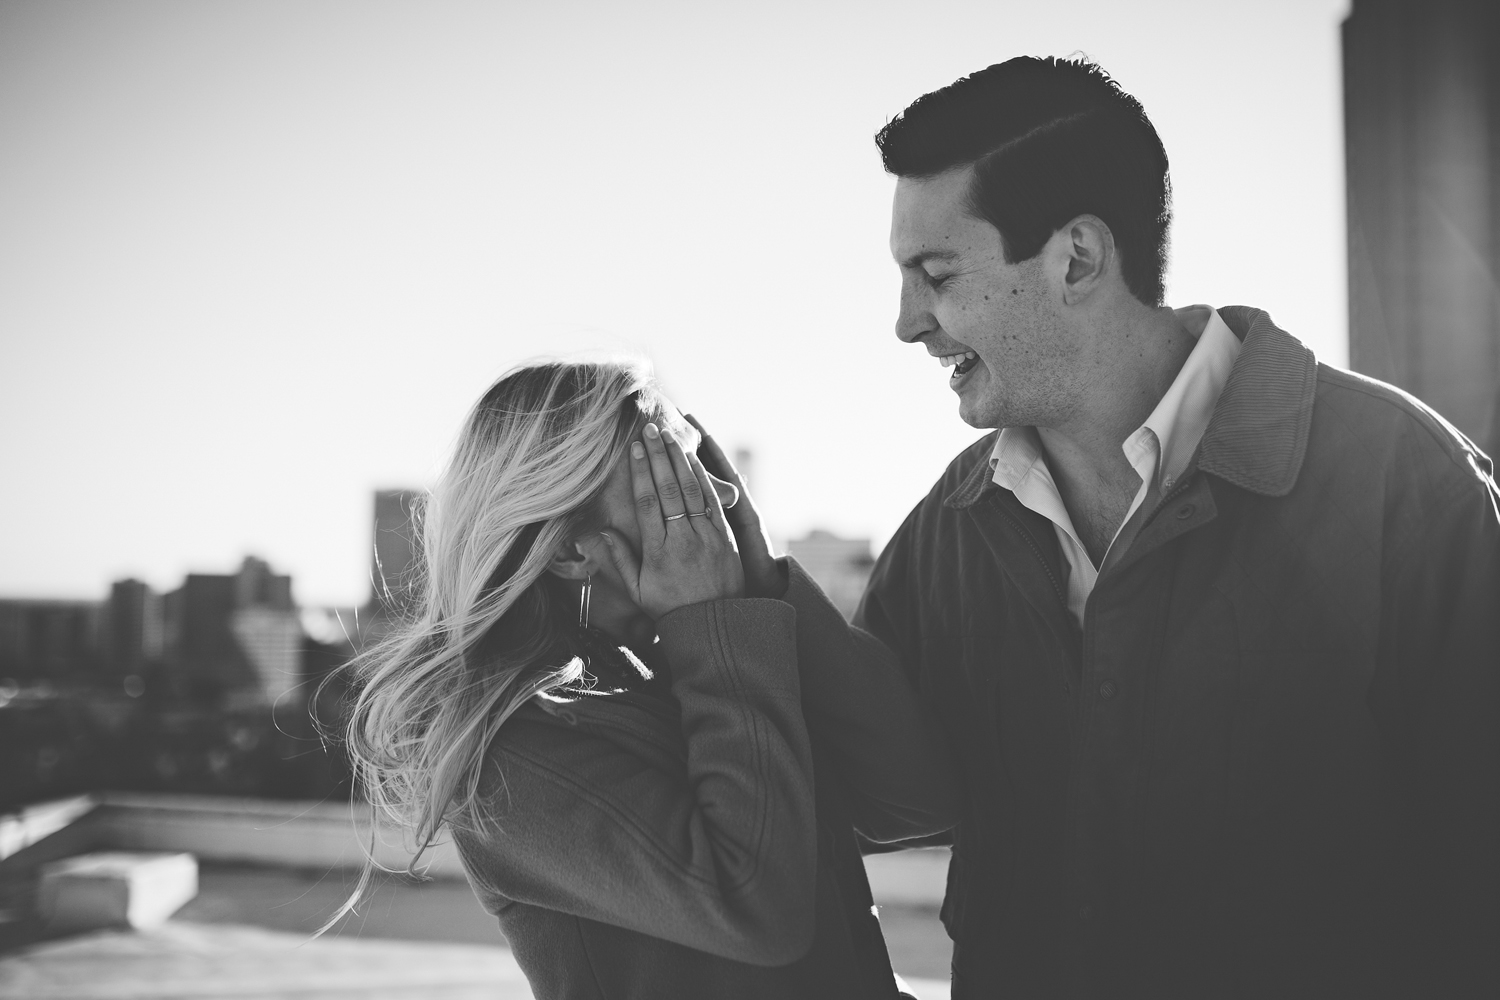 KDP_claire&drew - the proposal-243.jpg